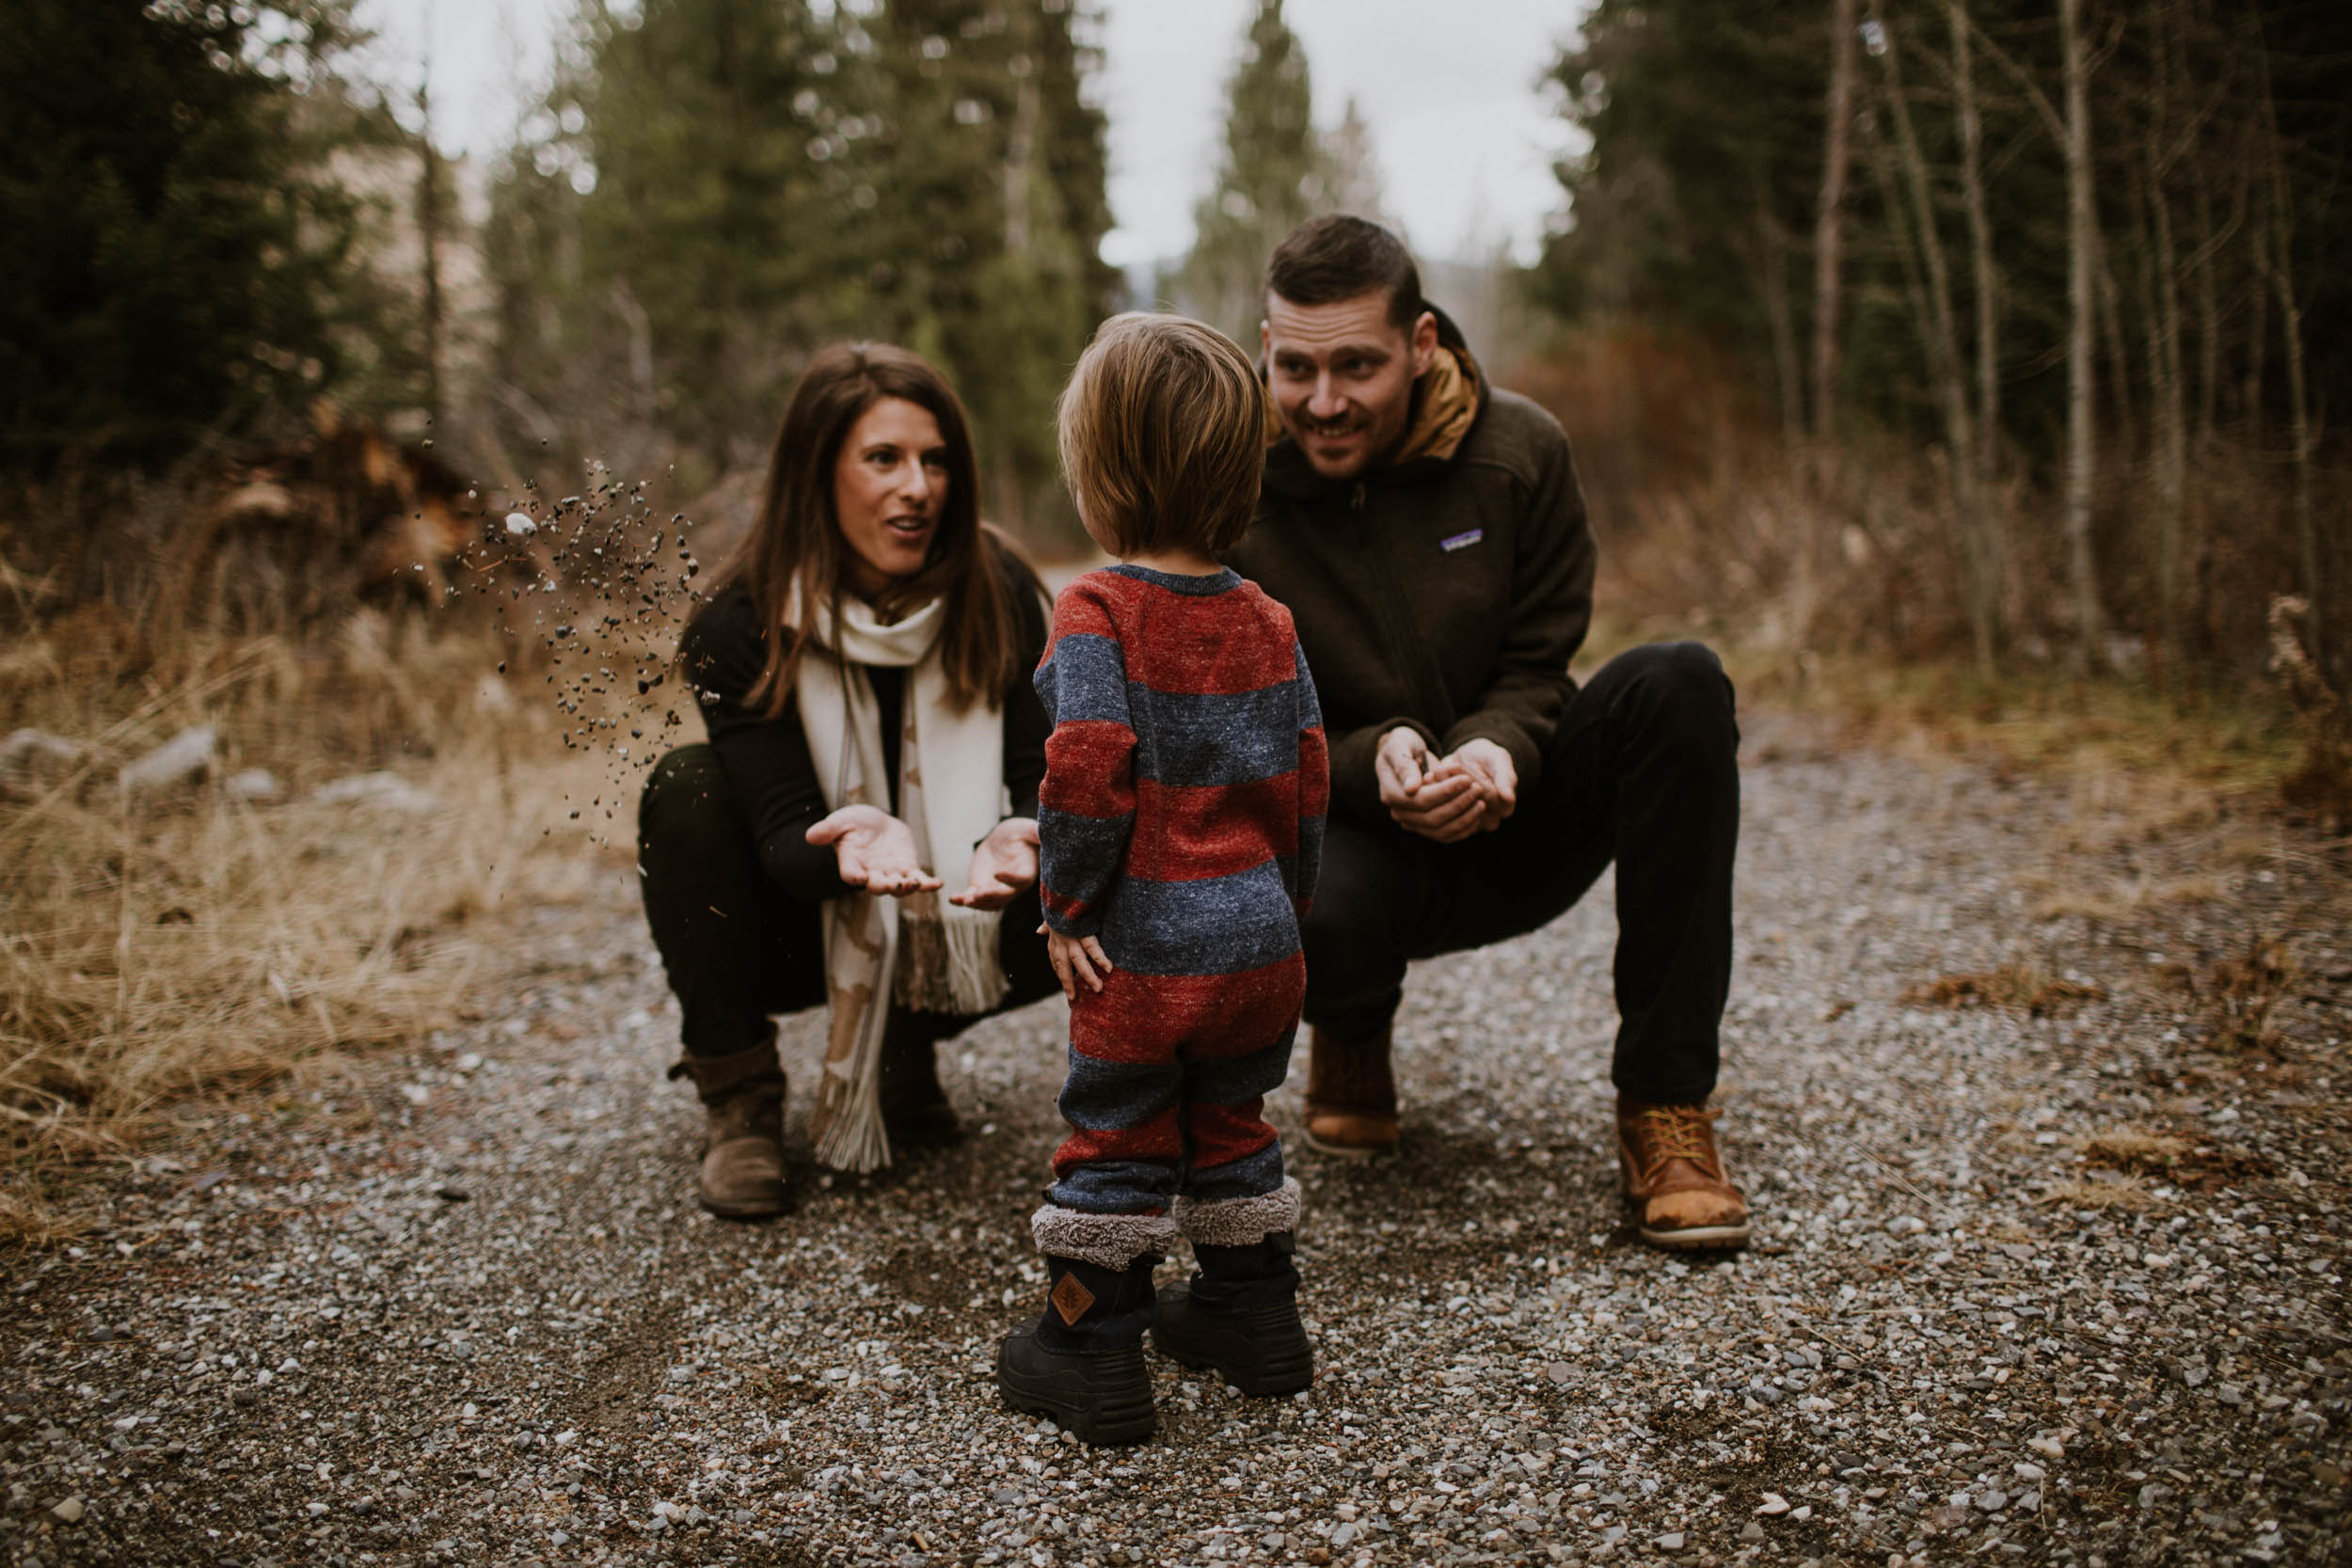 sunvalleyfamily_christinemariephoto-9.jpg